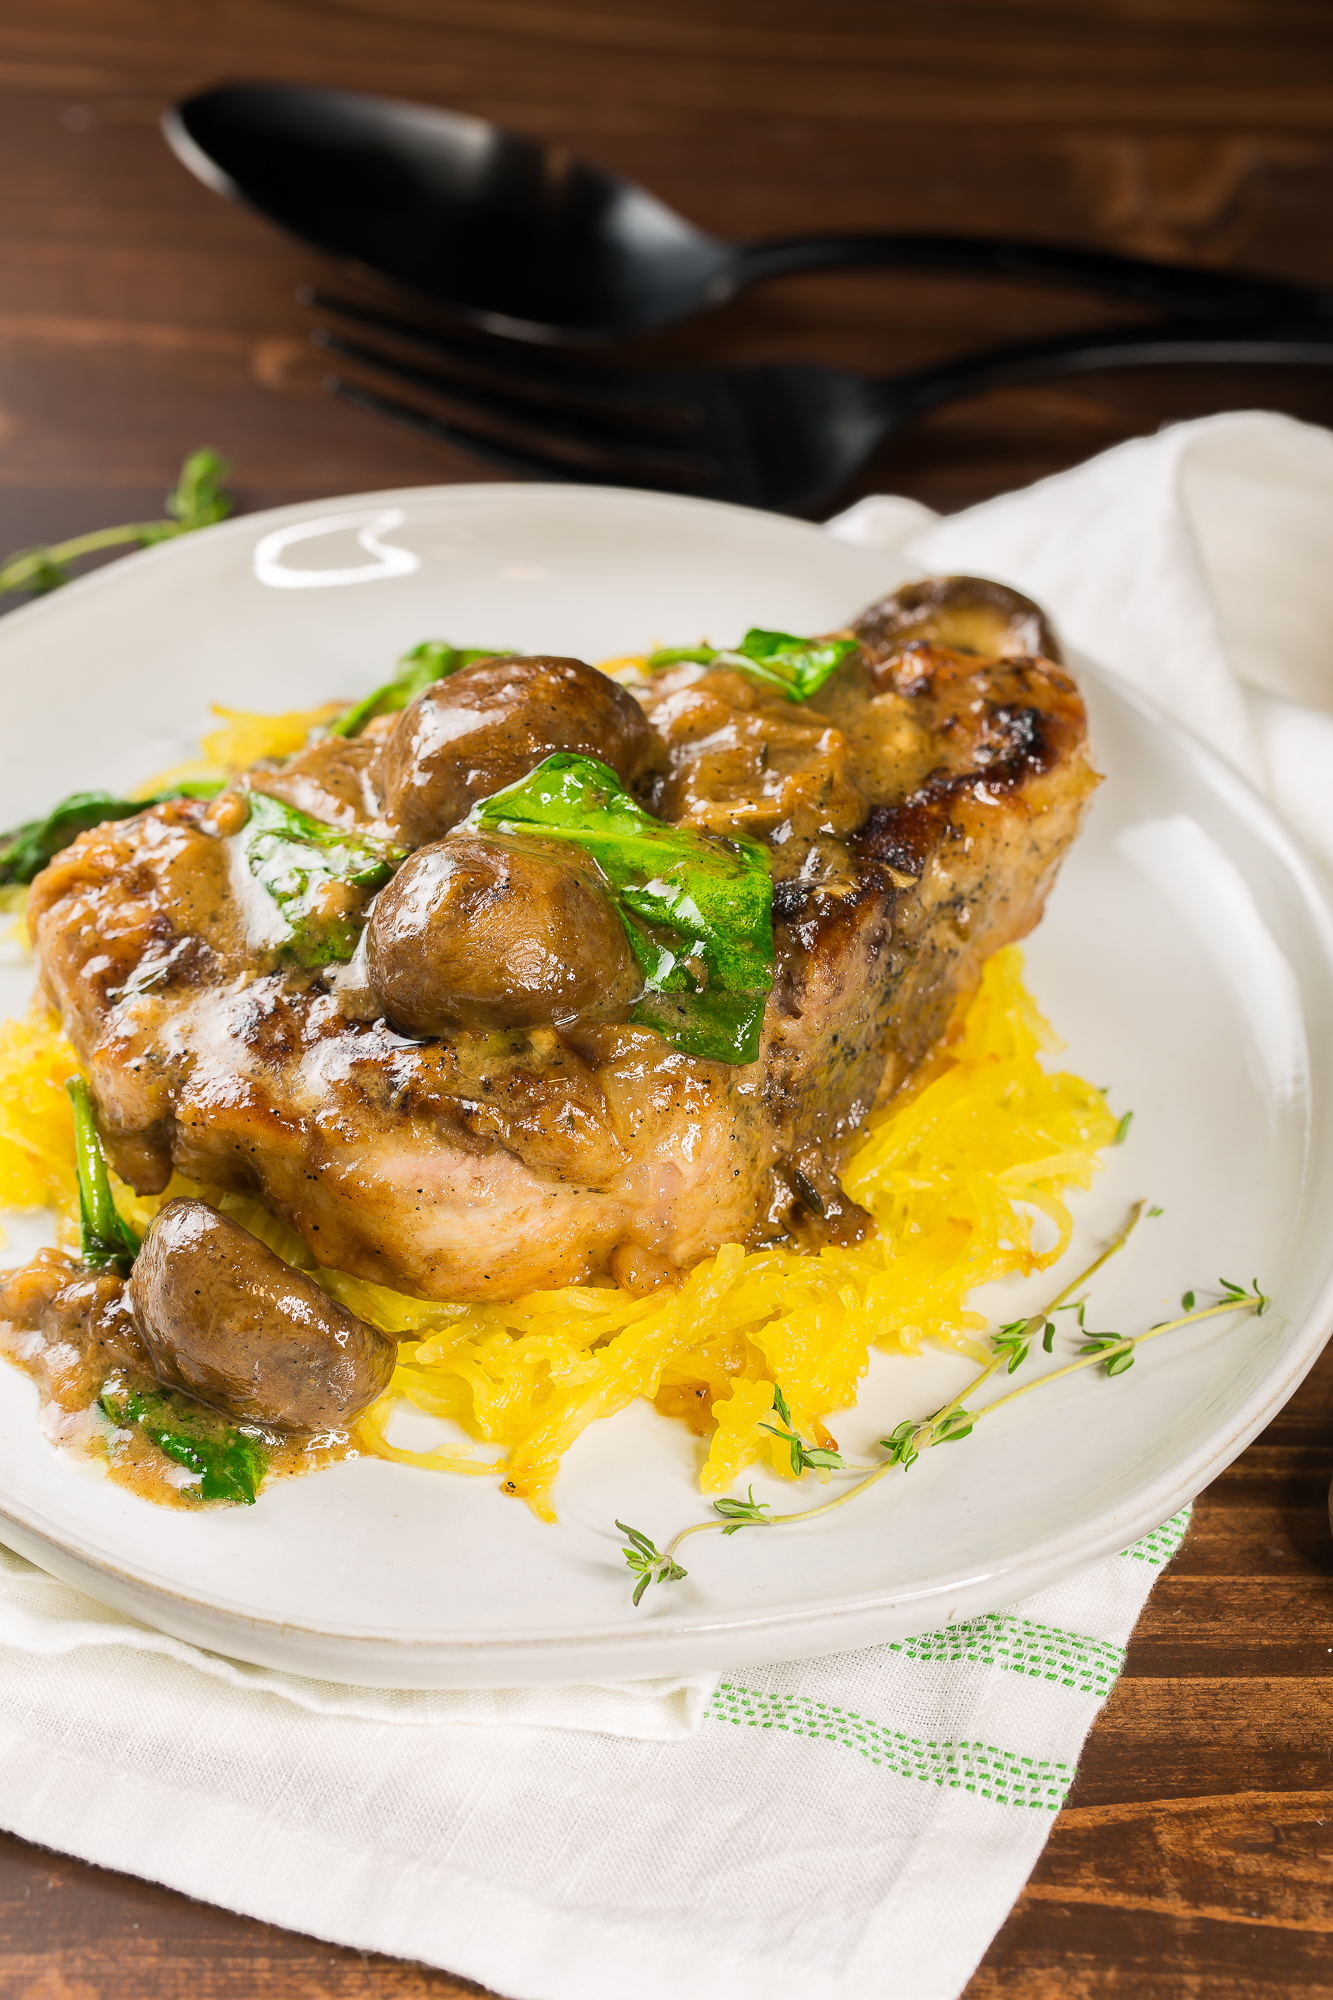 Yummy pork chops with mushroom gravy